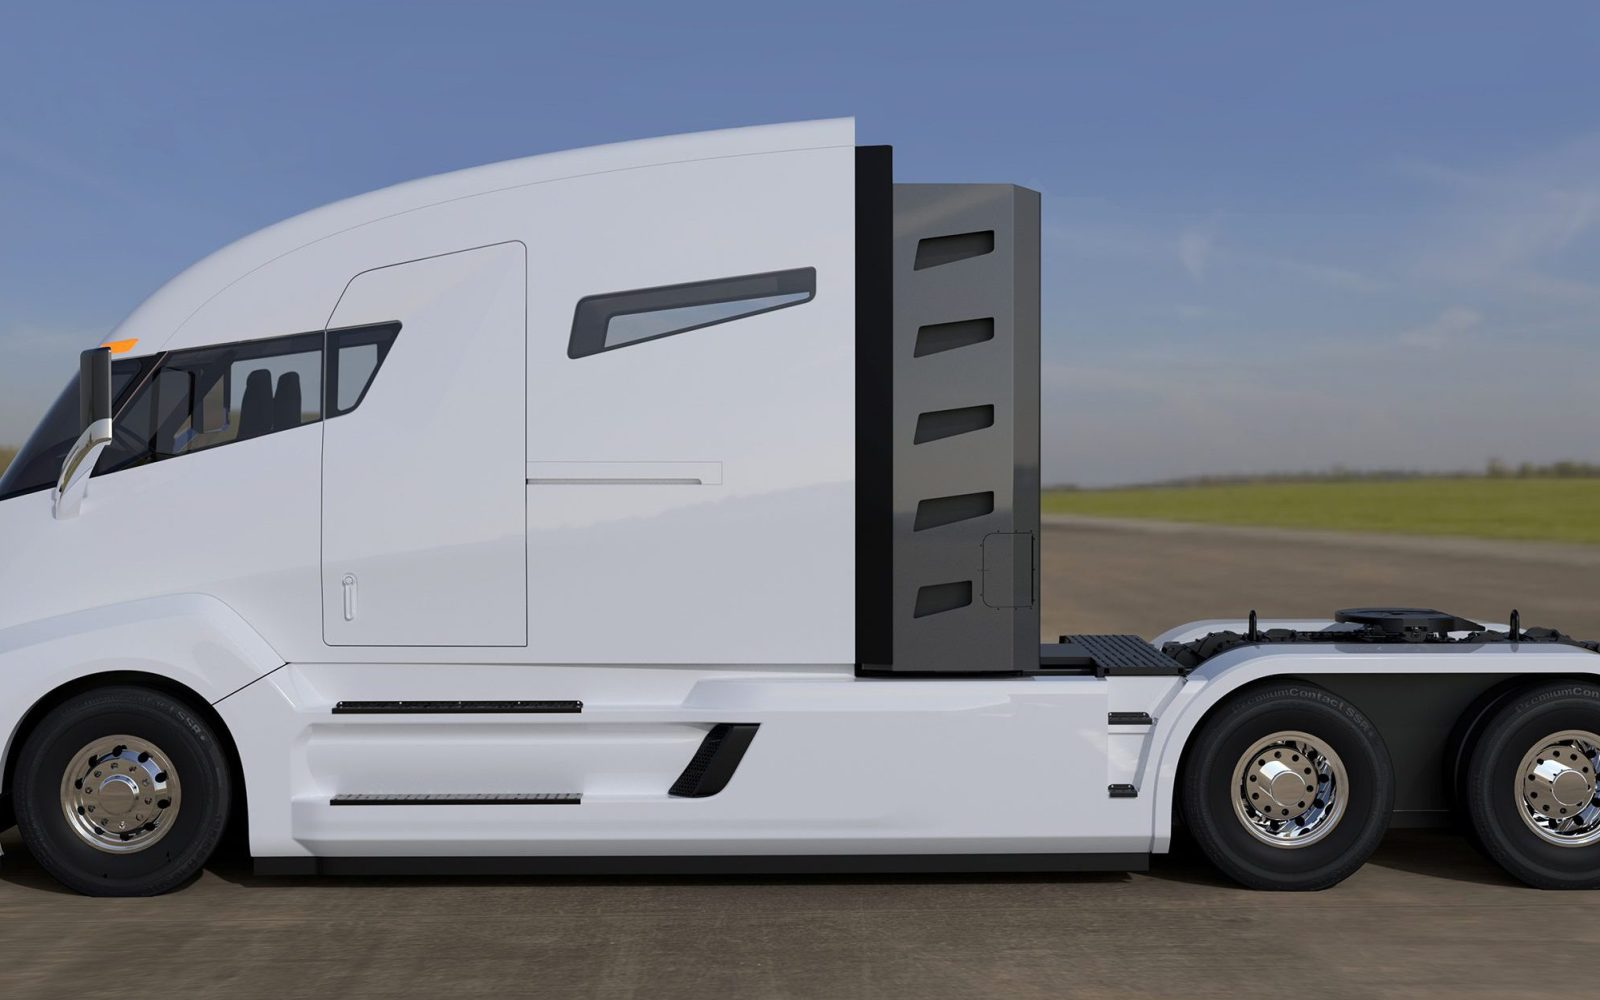 Tesla Semi: truck drivers will still be needed for 'a few years', says CEO Elon Musk